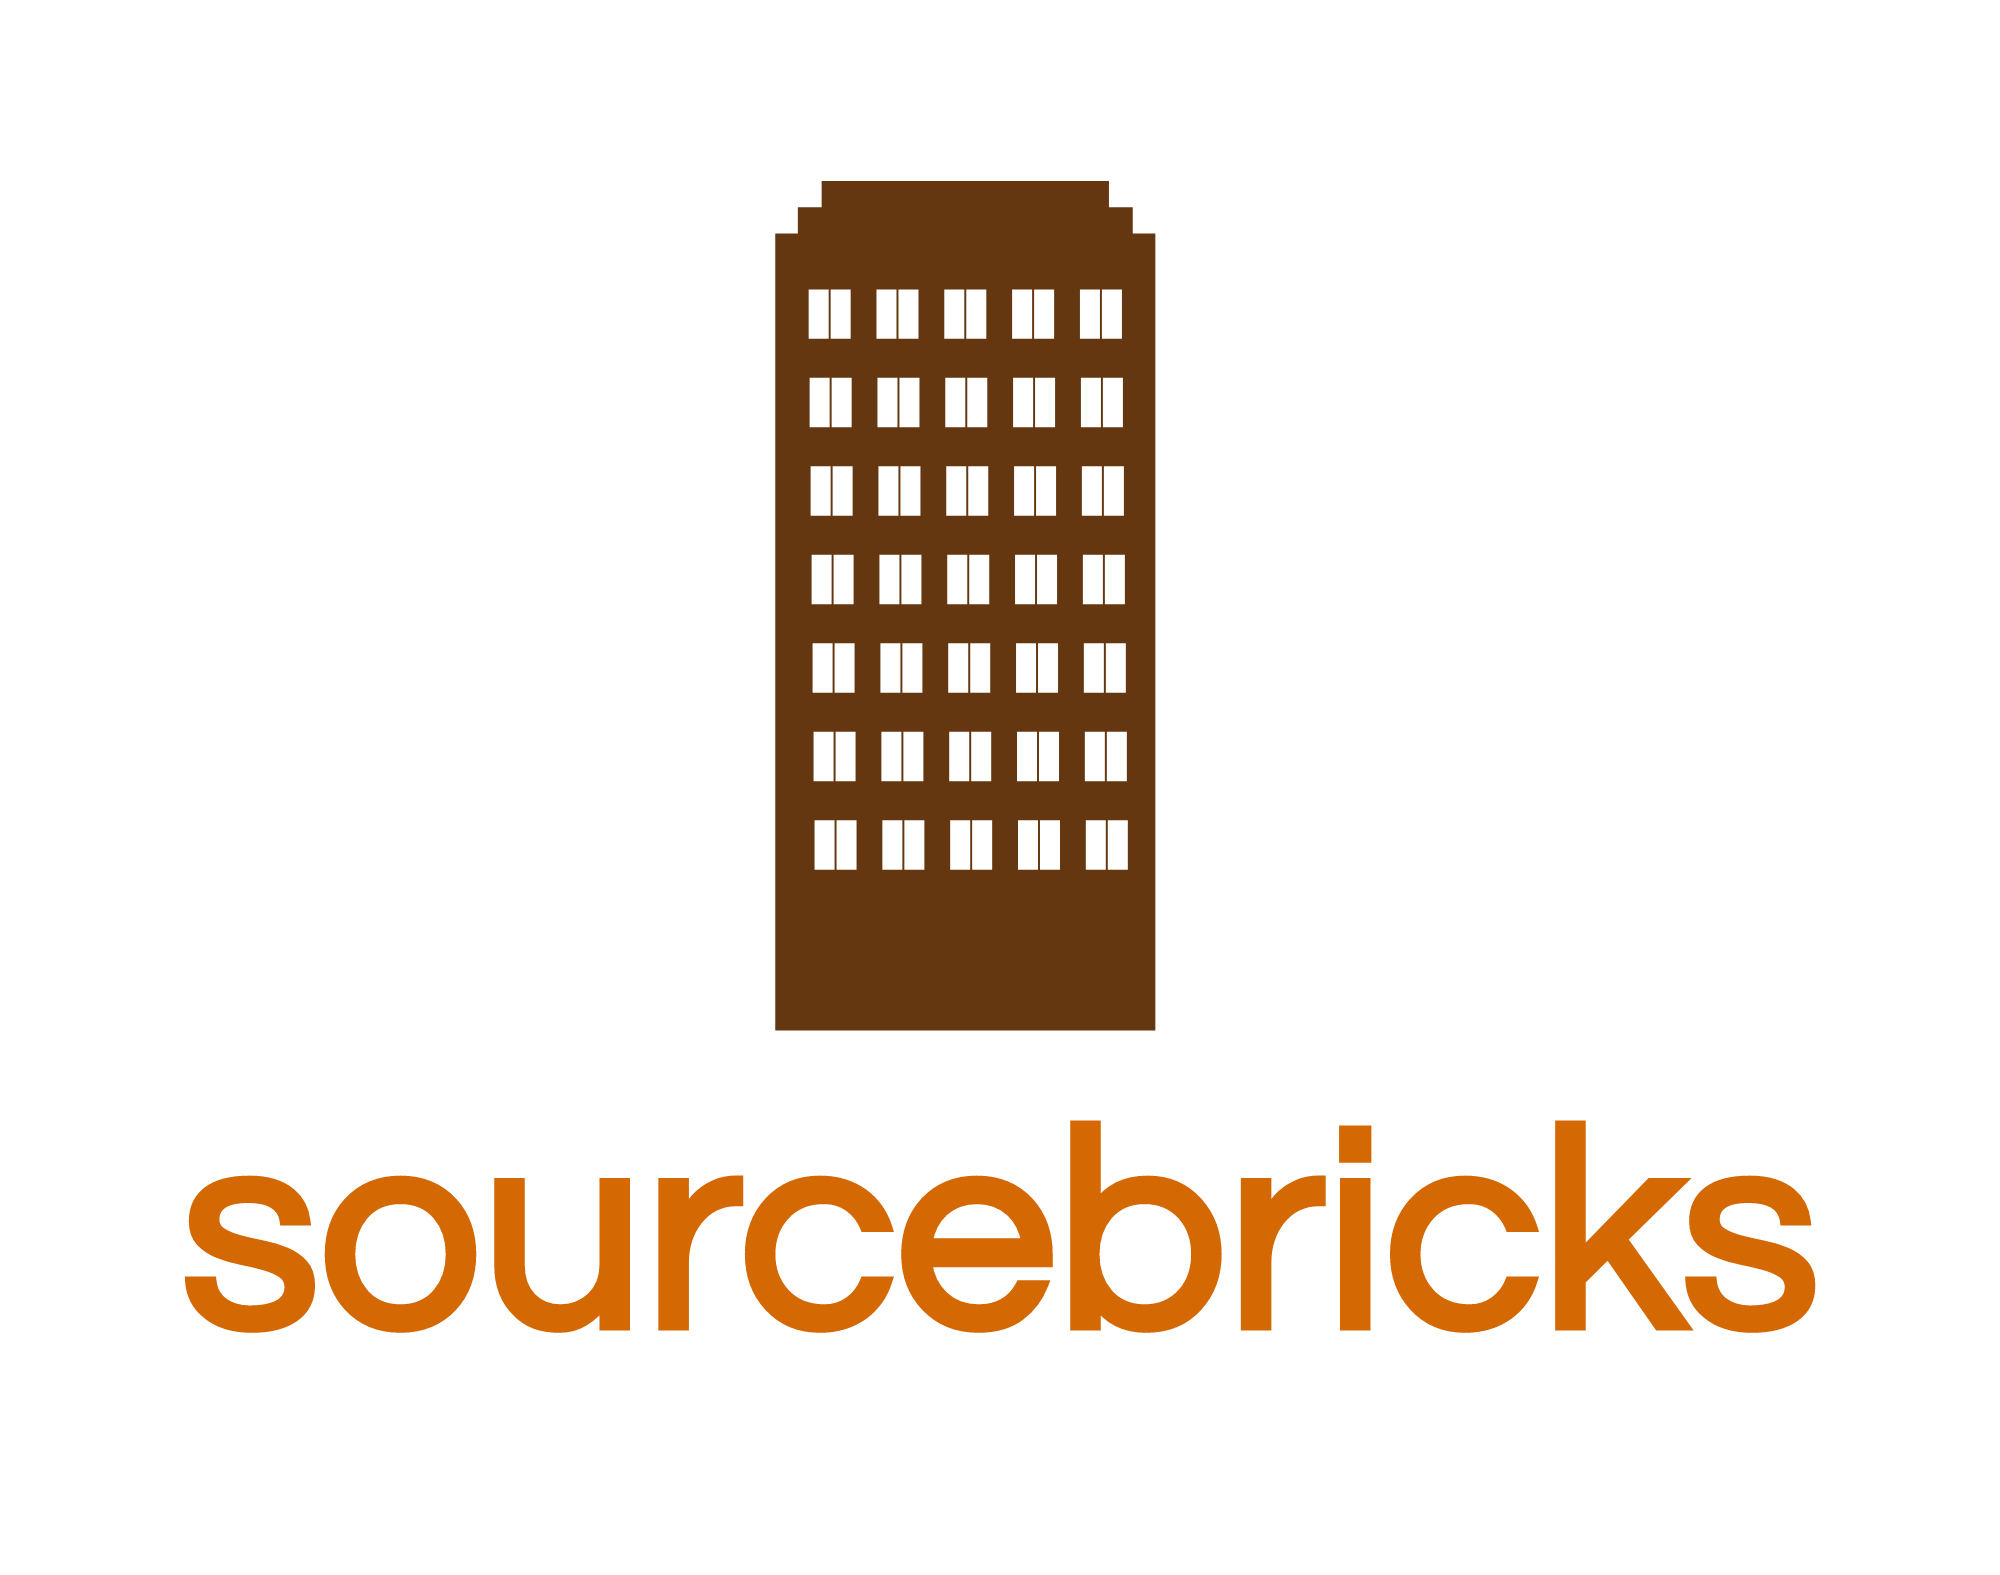 SOURCEBRICKS